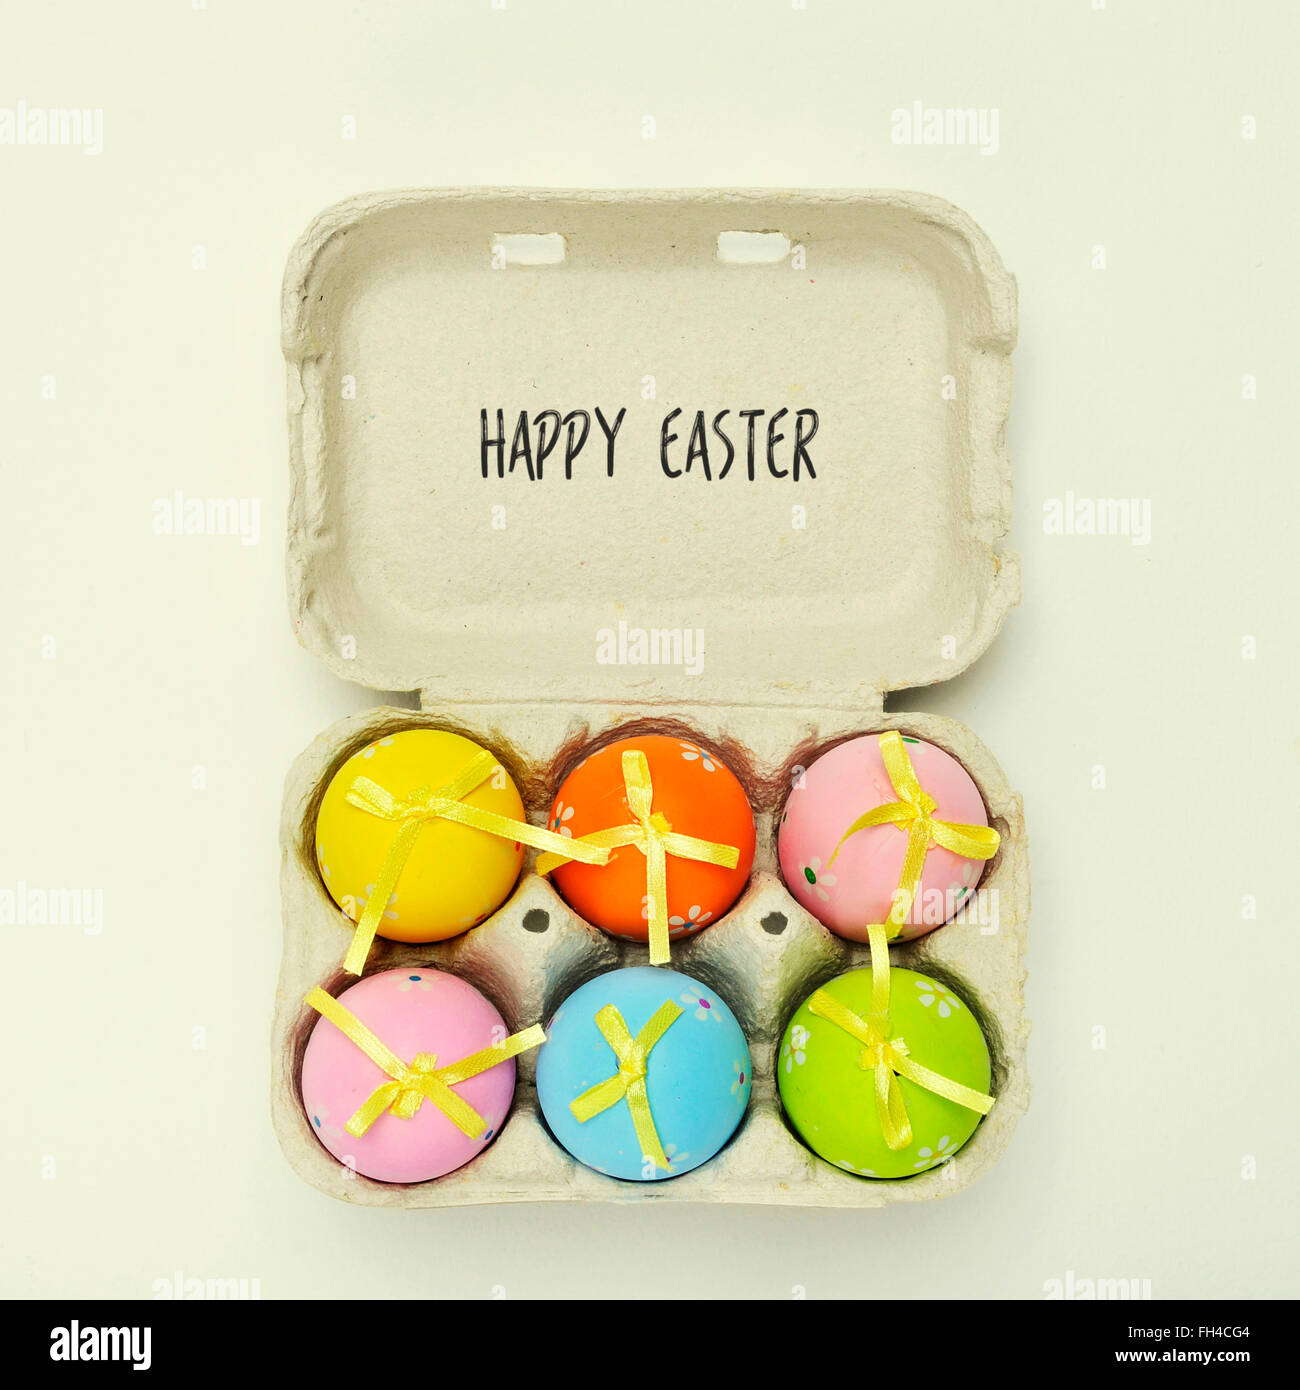 high-angle shot of an egg carton full of decorated easter eggs of different colors and the text happy easter written - Stock Image